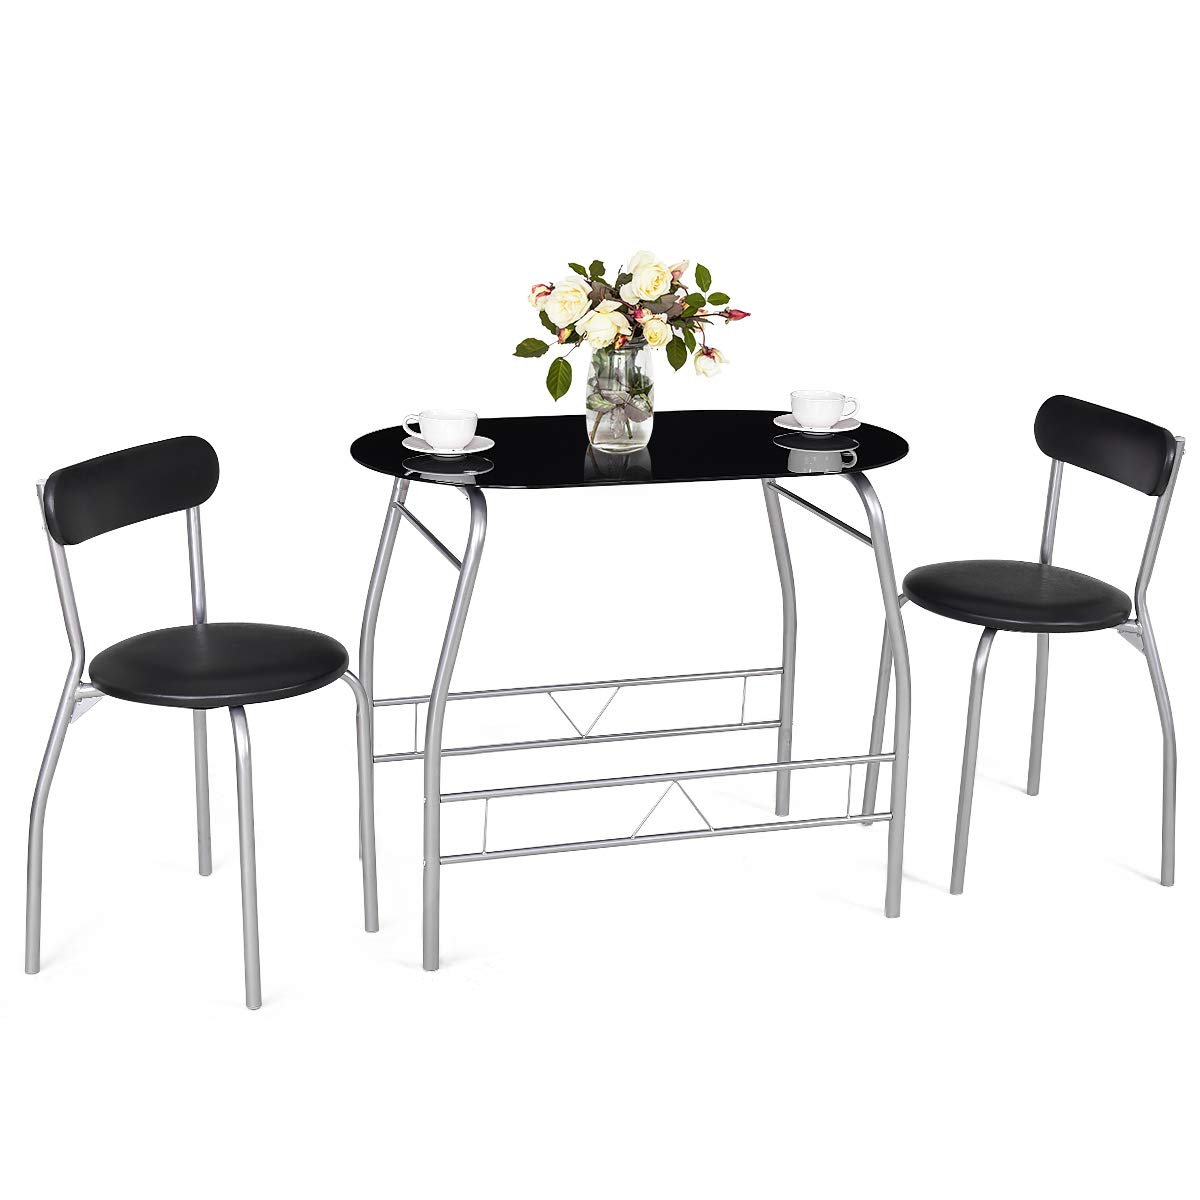 Trendy 3 Pieces Dining Tables And Chair Set With Tangkula 3 Piece Dining Set Modern Metal Frame Glass Top Table And 2 Chairs Set Home Kitchen Bistro Pub Breakfast Furniture, Black And Silver (View 24 of 30)